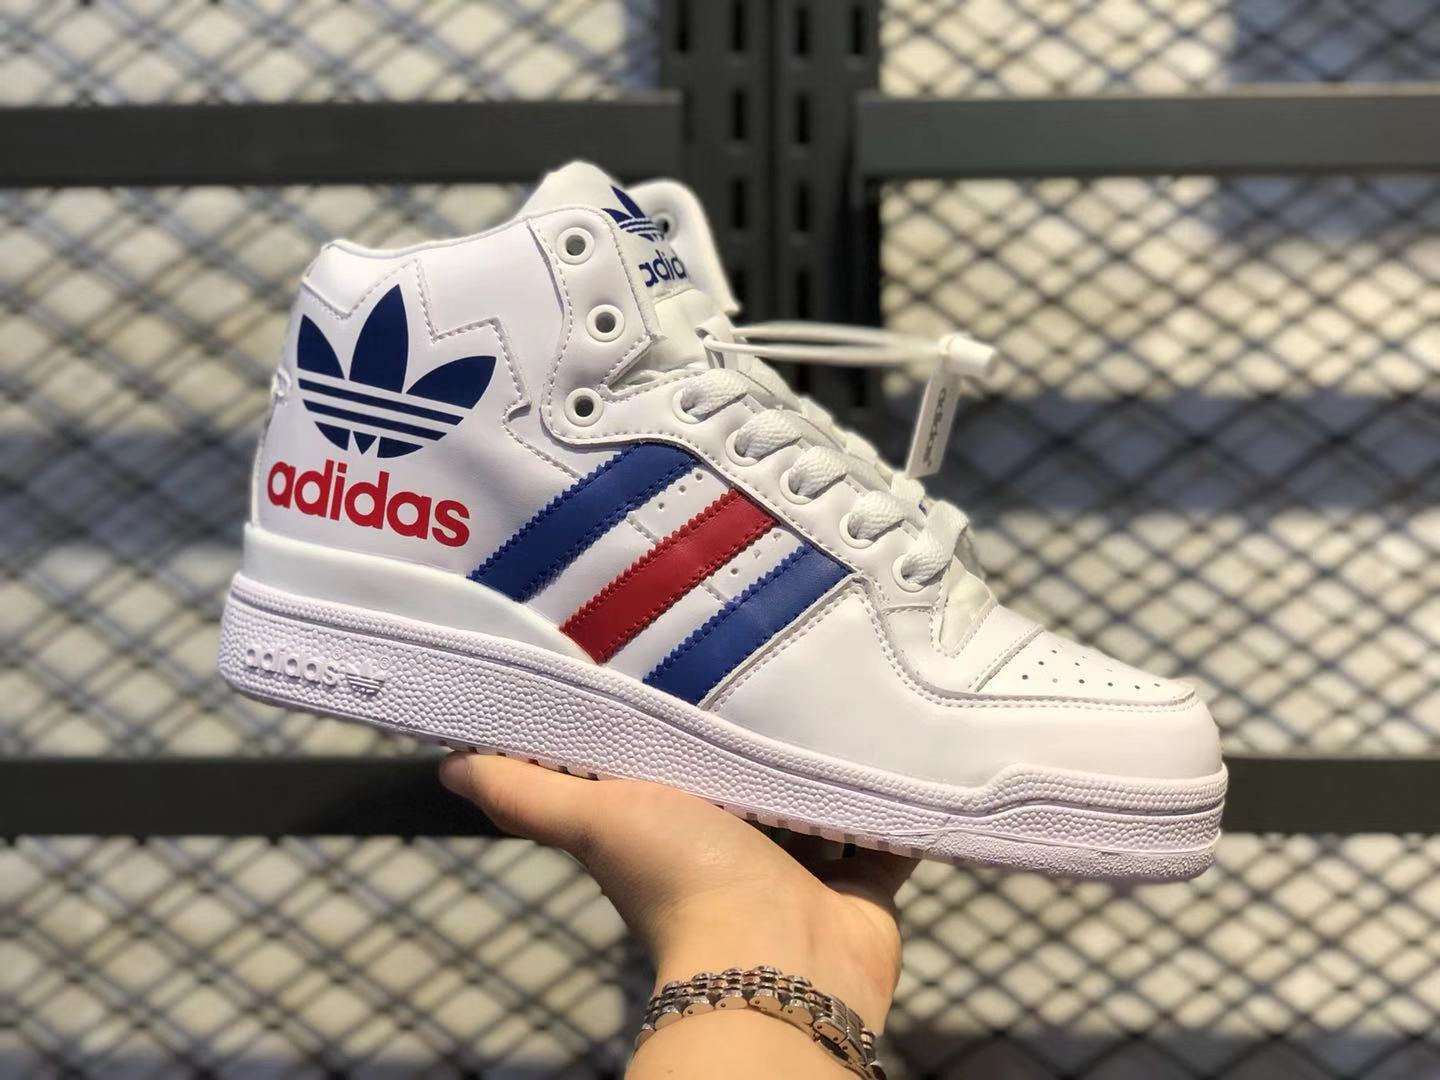 Adidas Forum High FU9396 White/Blue-Gym Red Top Shoes For ...